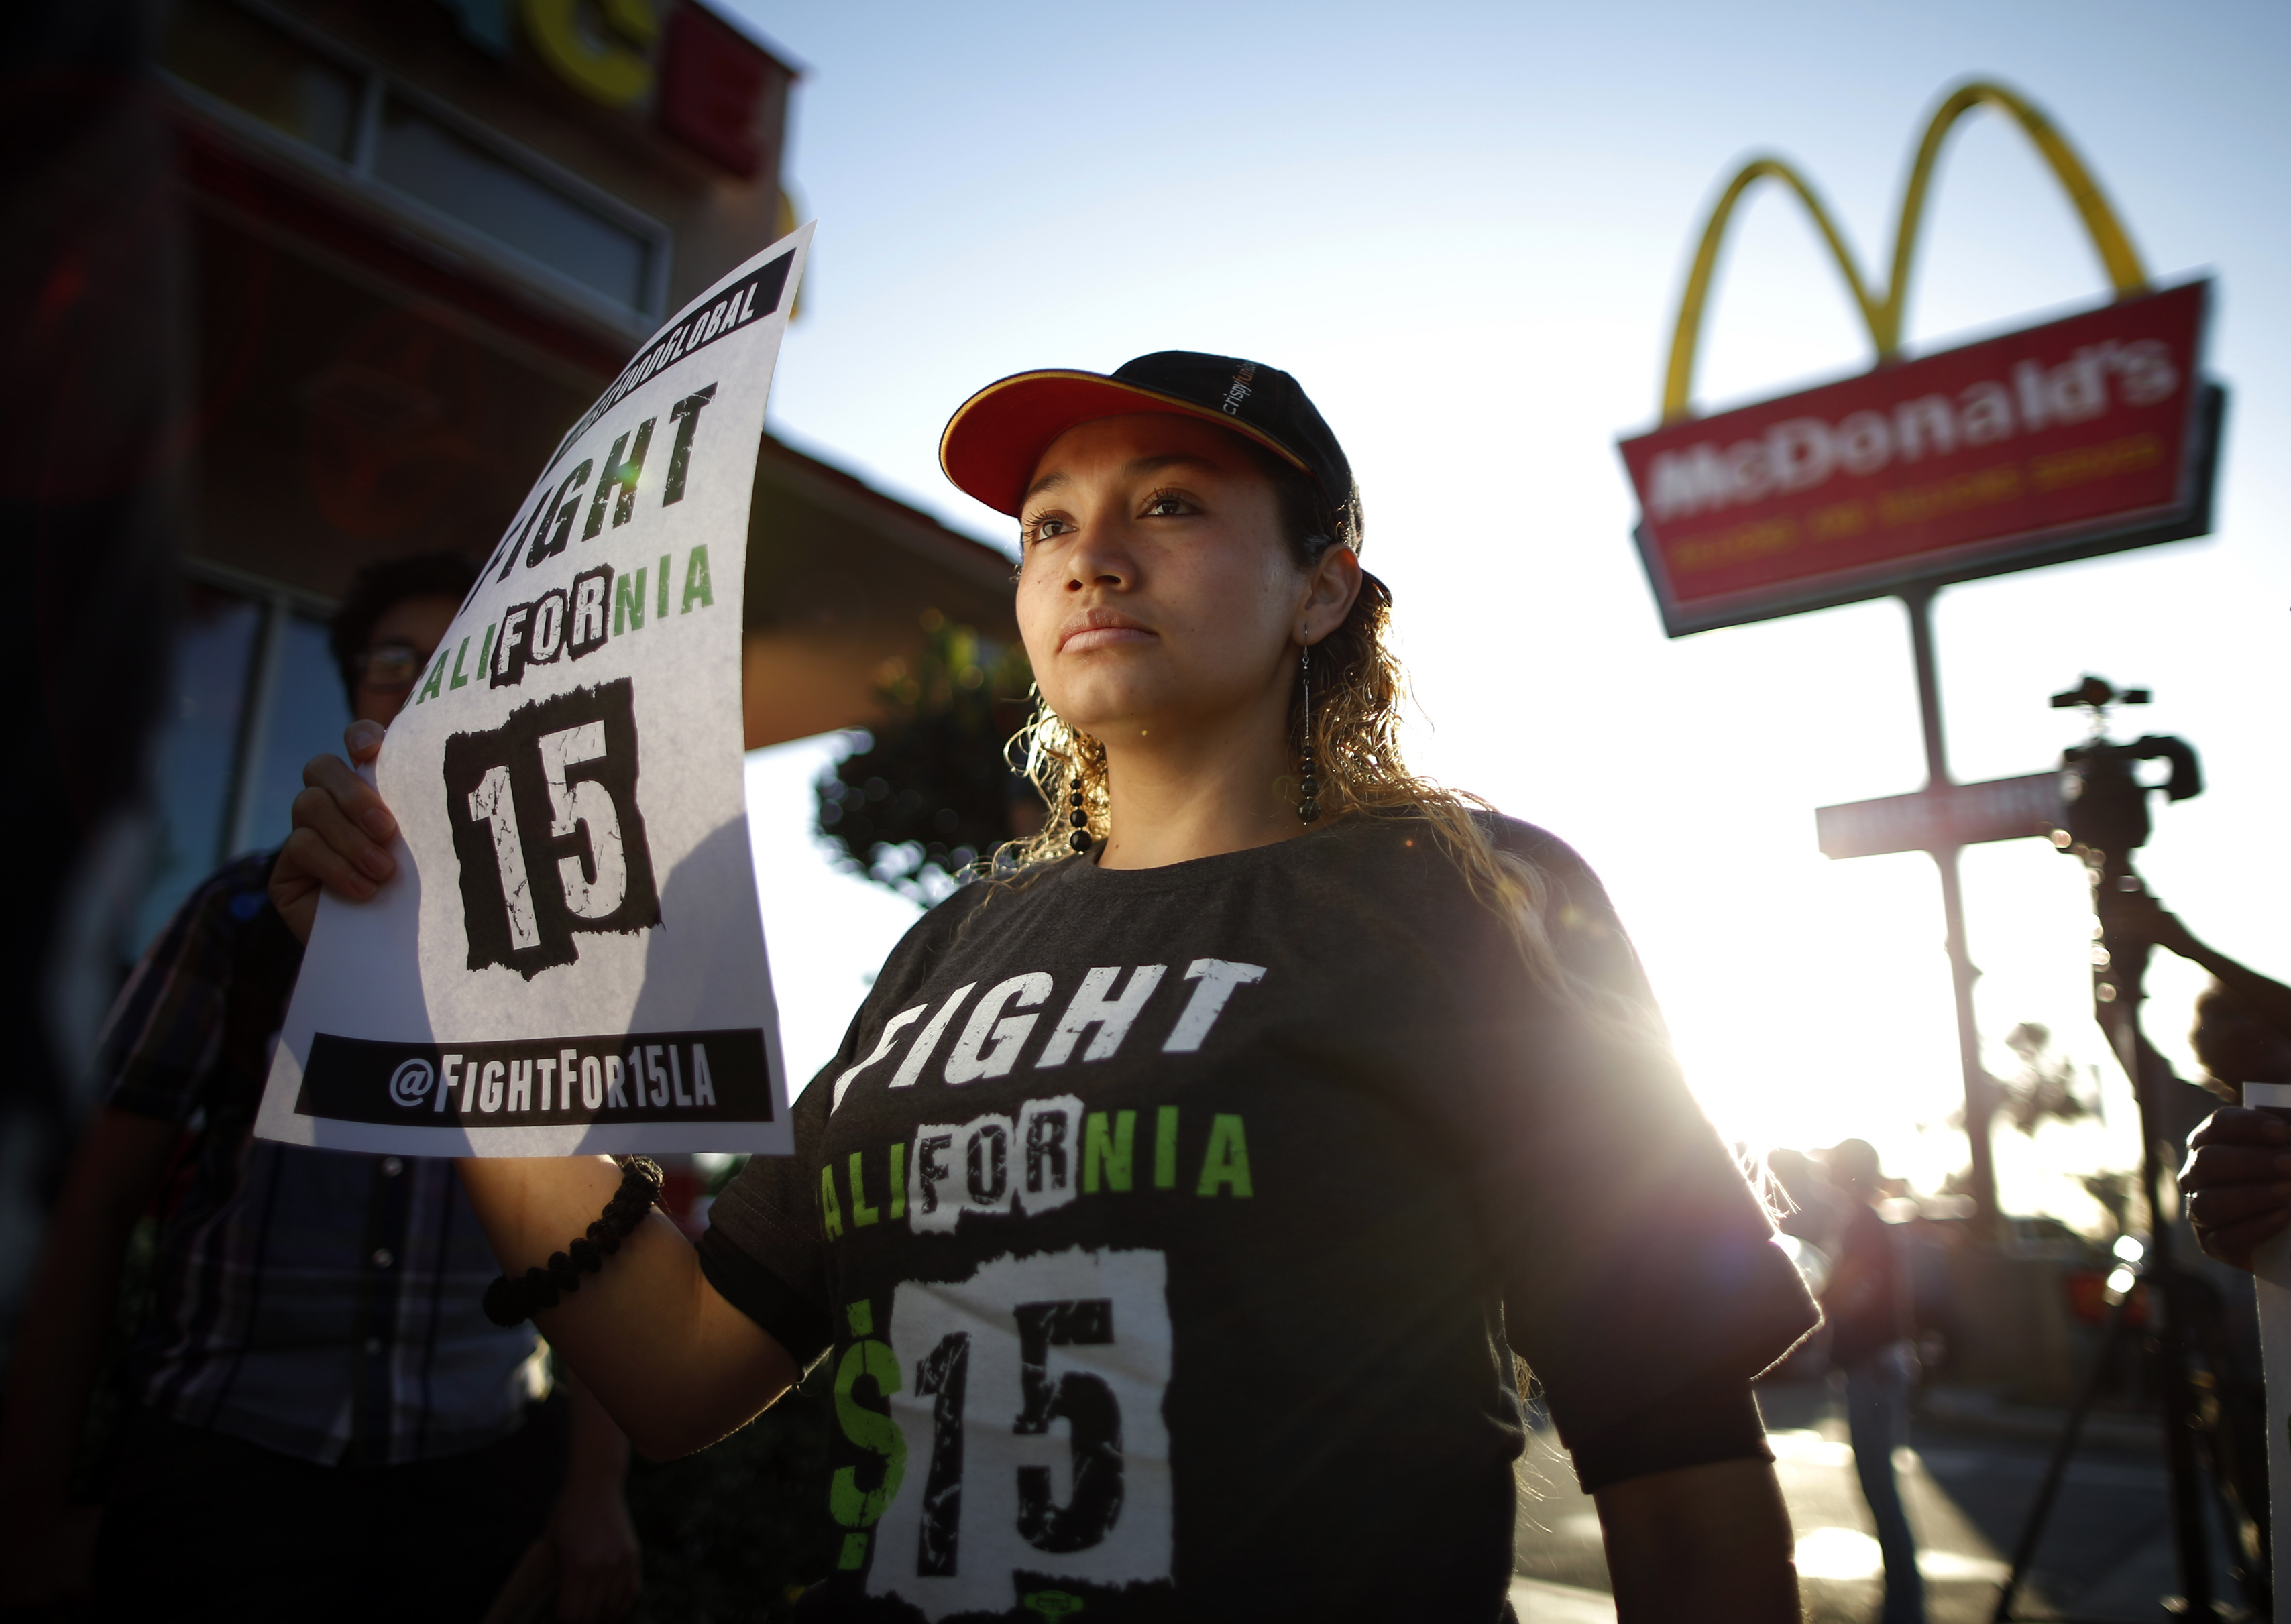 Demonstrators take part in a protest to demand higher wages for fast-food workers outside McDonald's in Los Angeles on May 15, 2014.